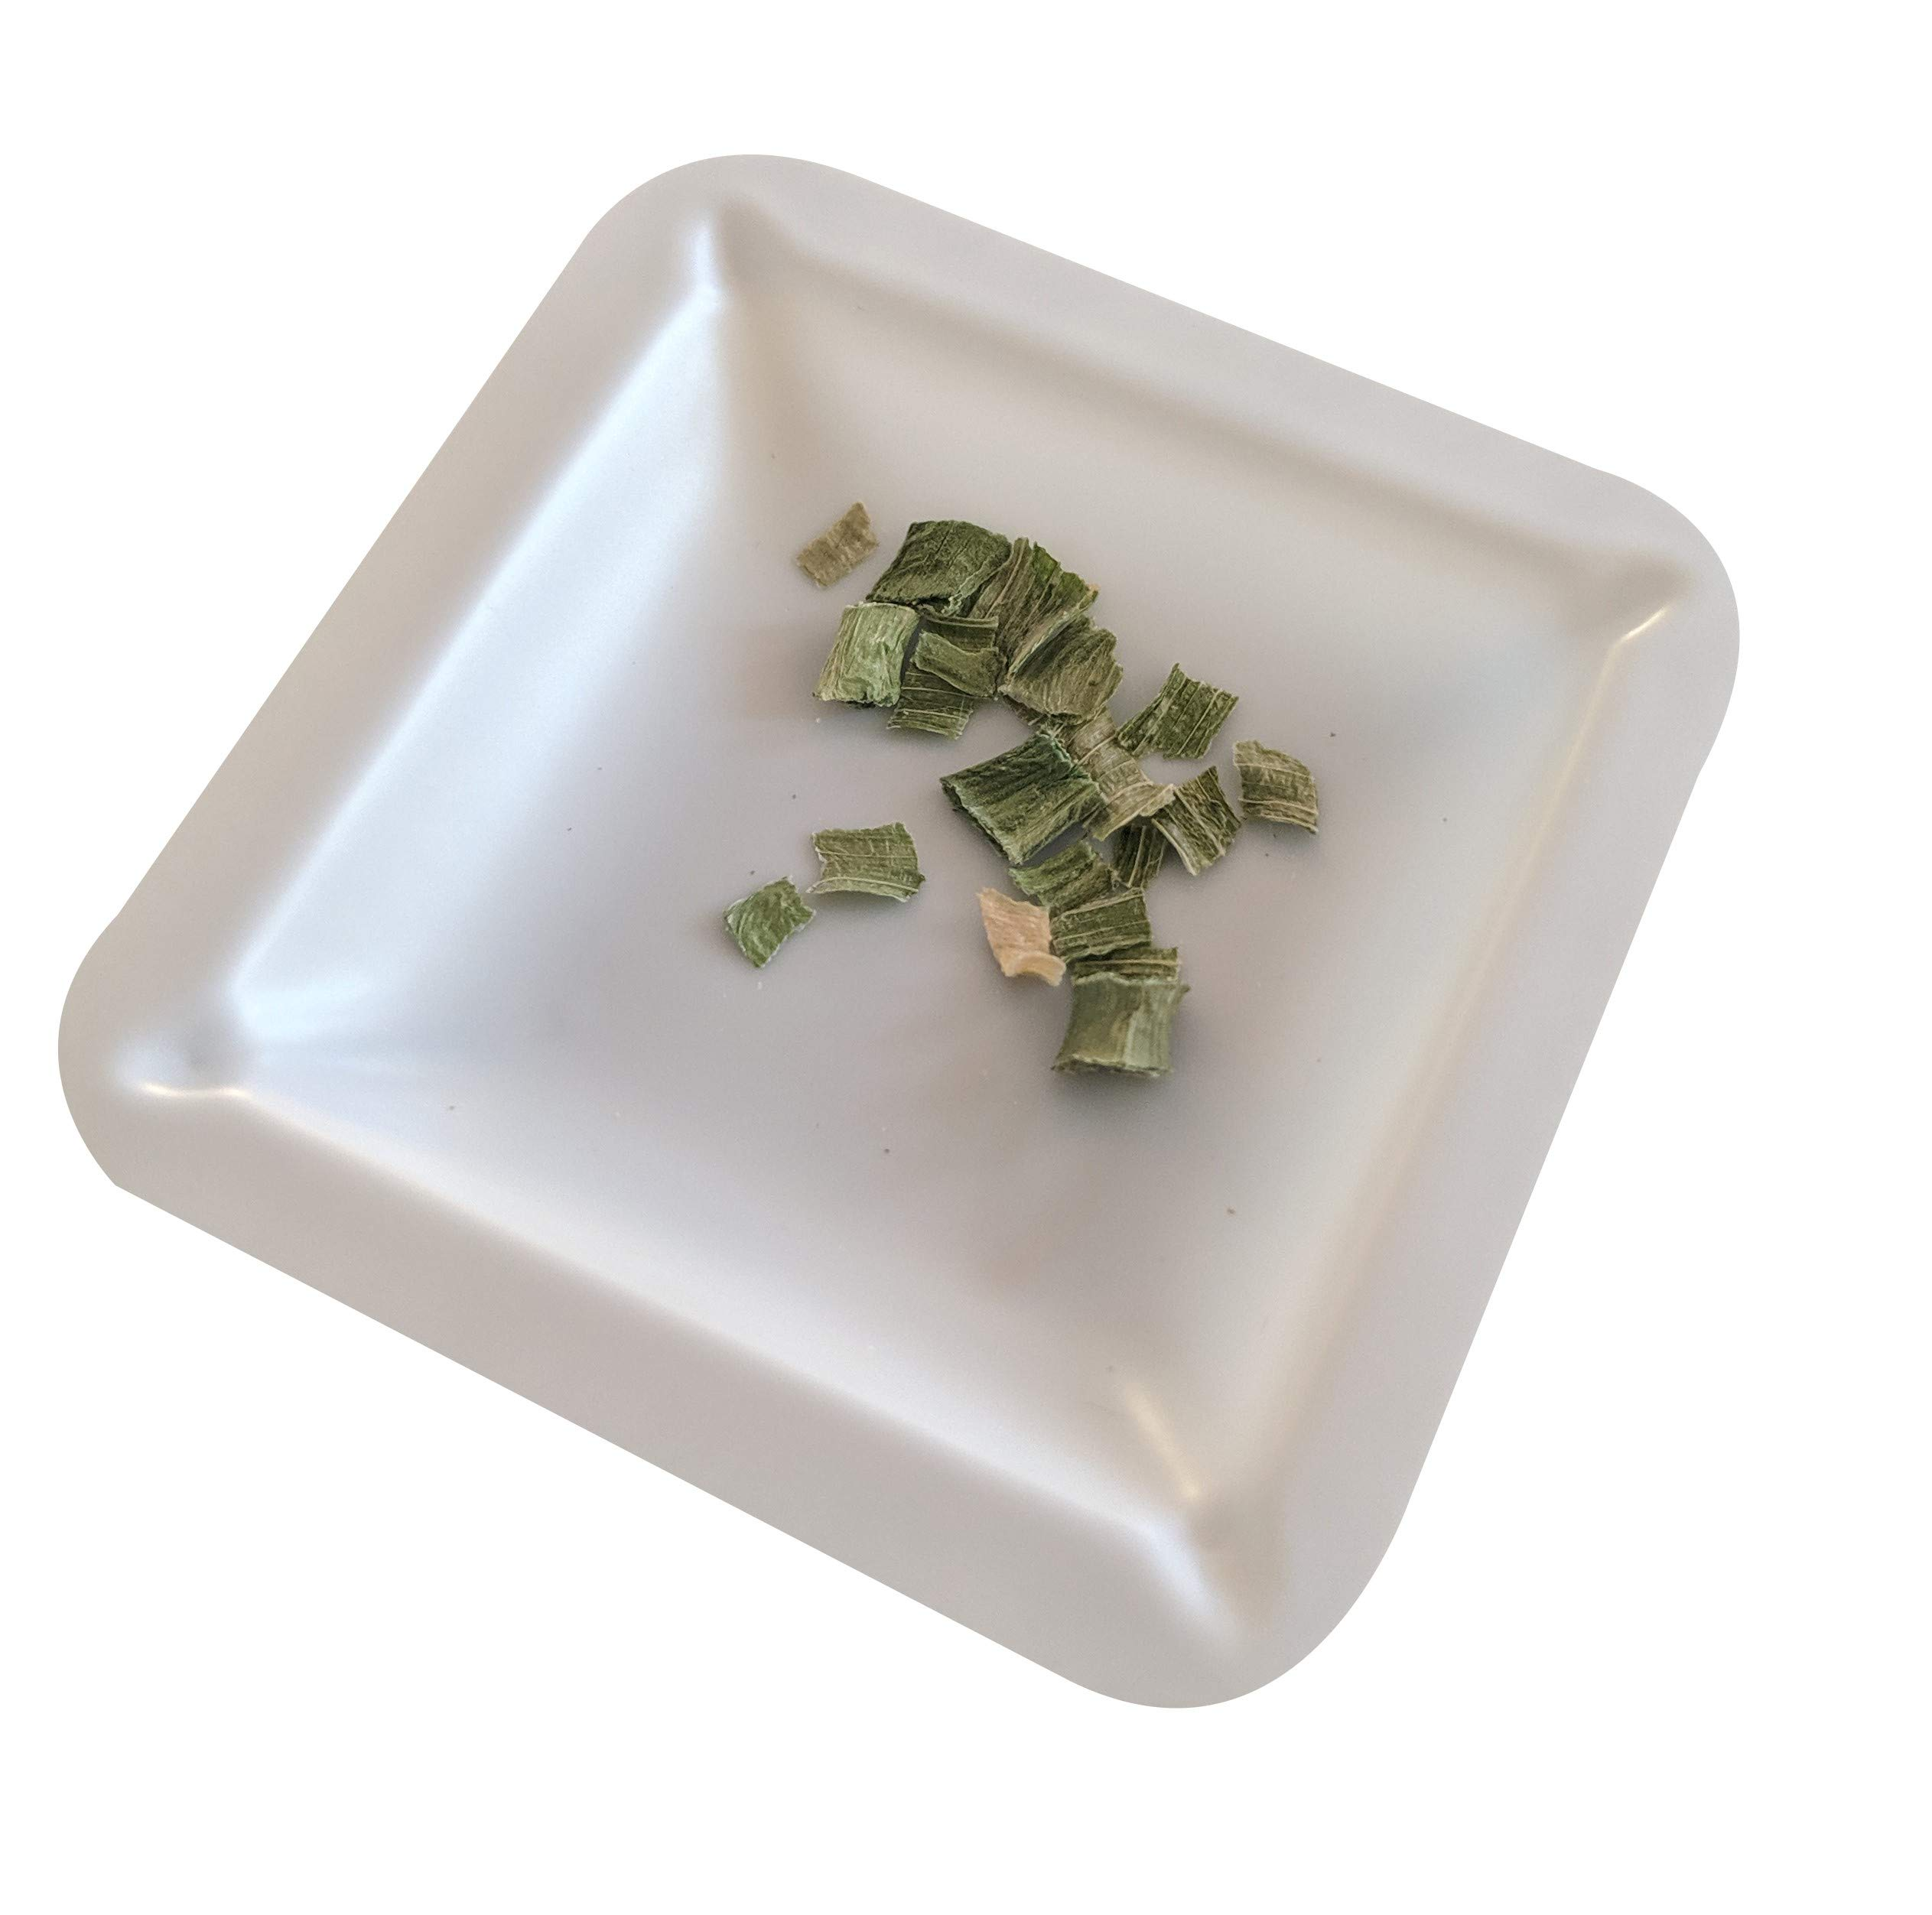 Plastic Square Weigh Boats, Mini Dish (1 3/4 in x 1 3/4 in x 3/8 in) [Pack of 125] by Bartovation